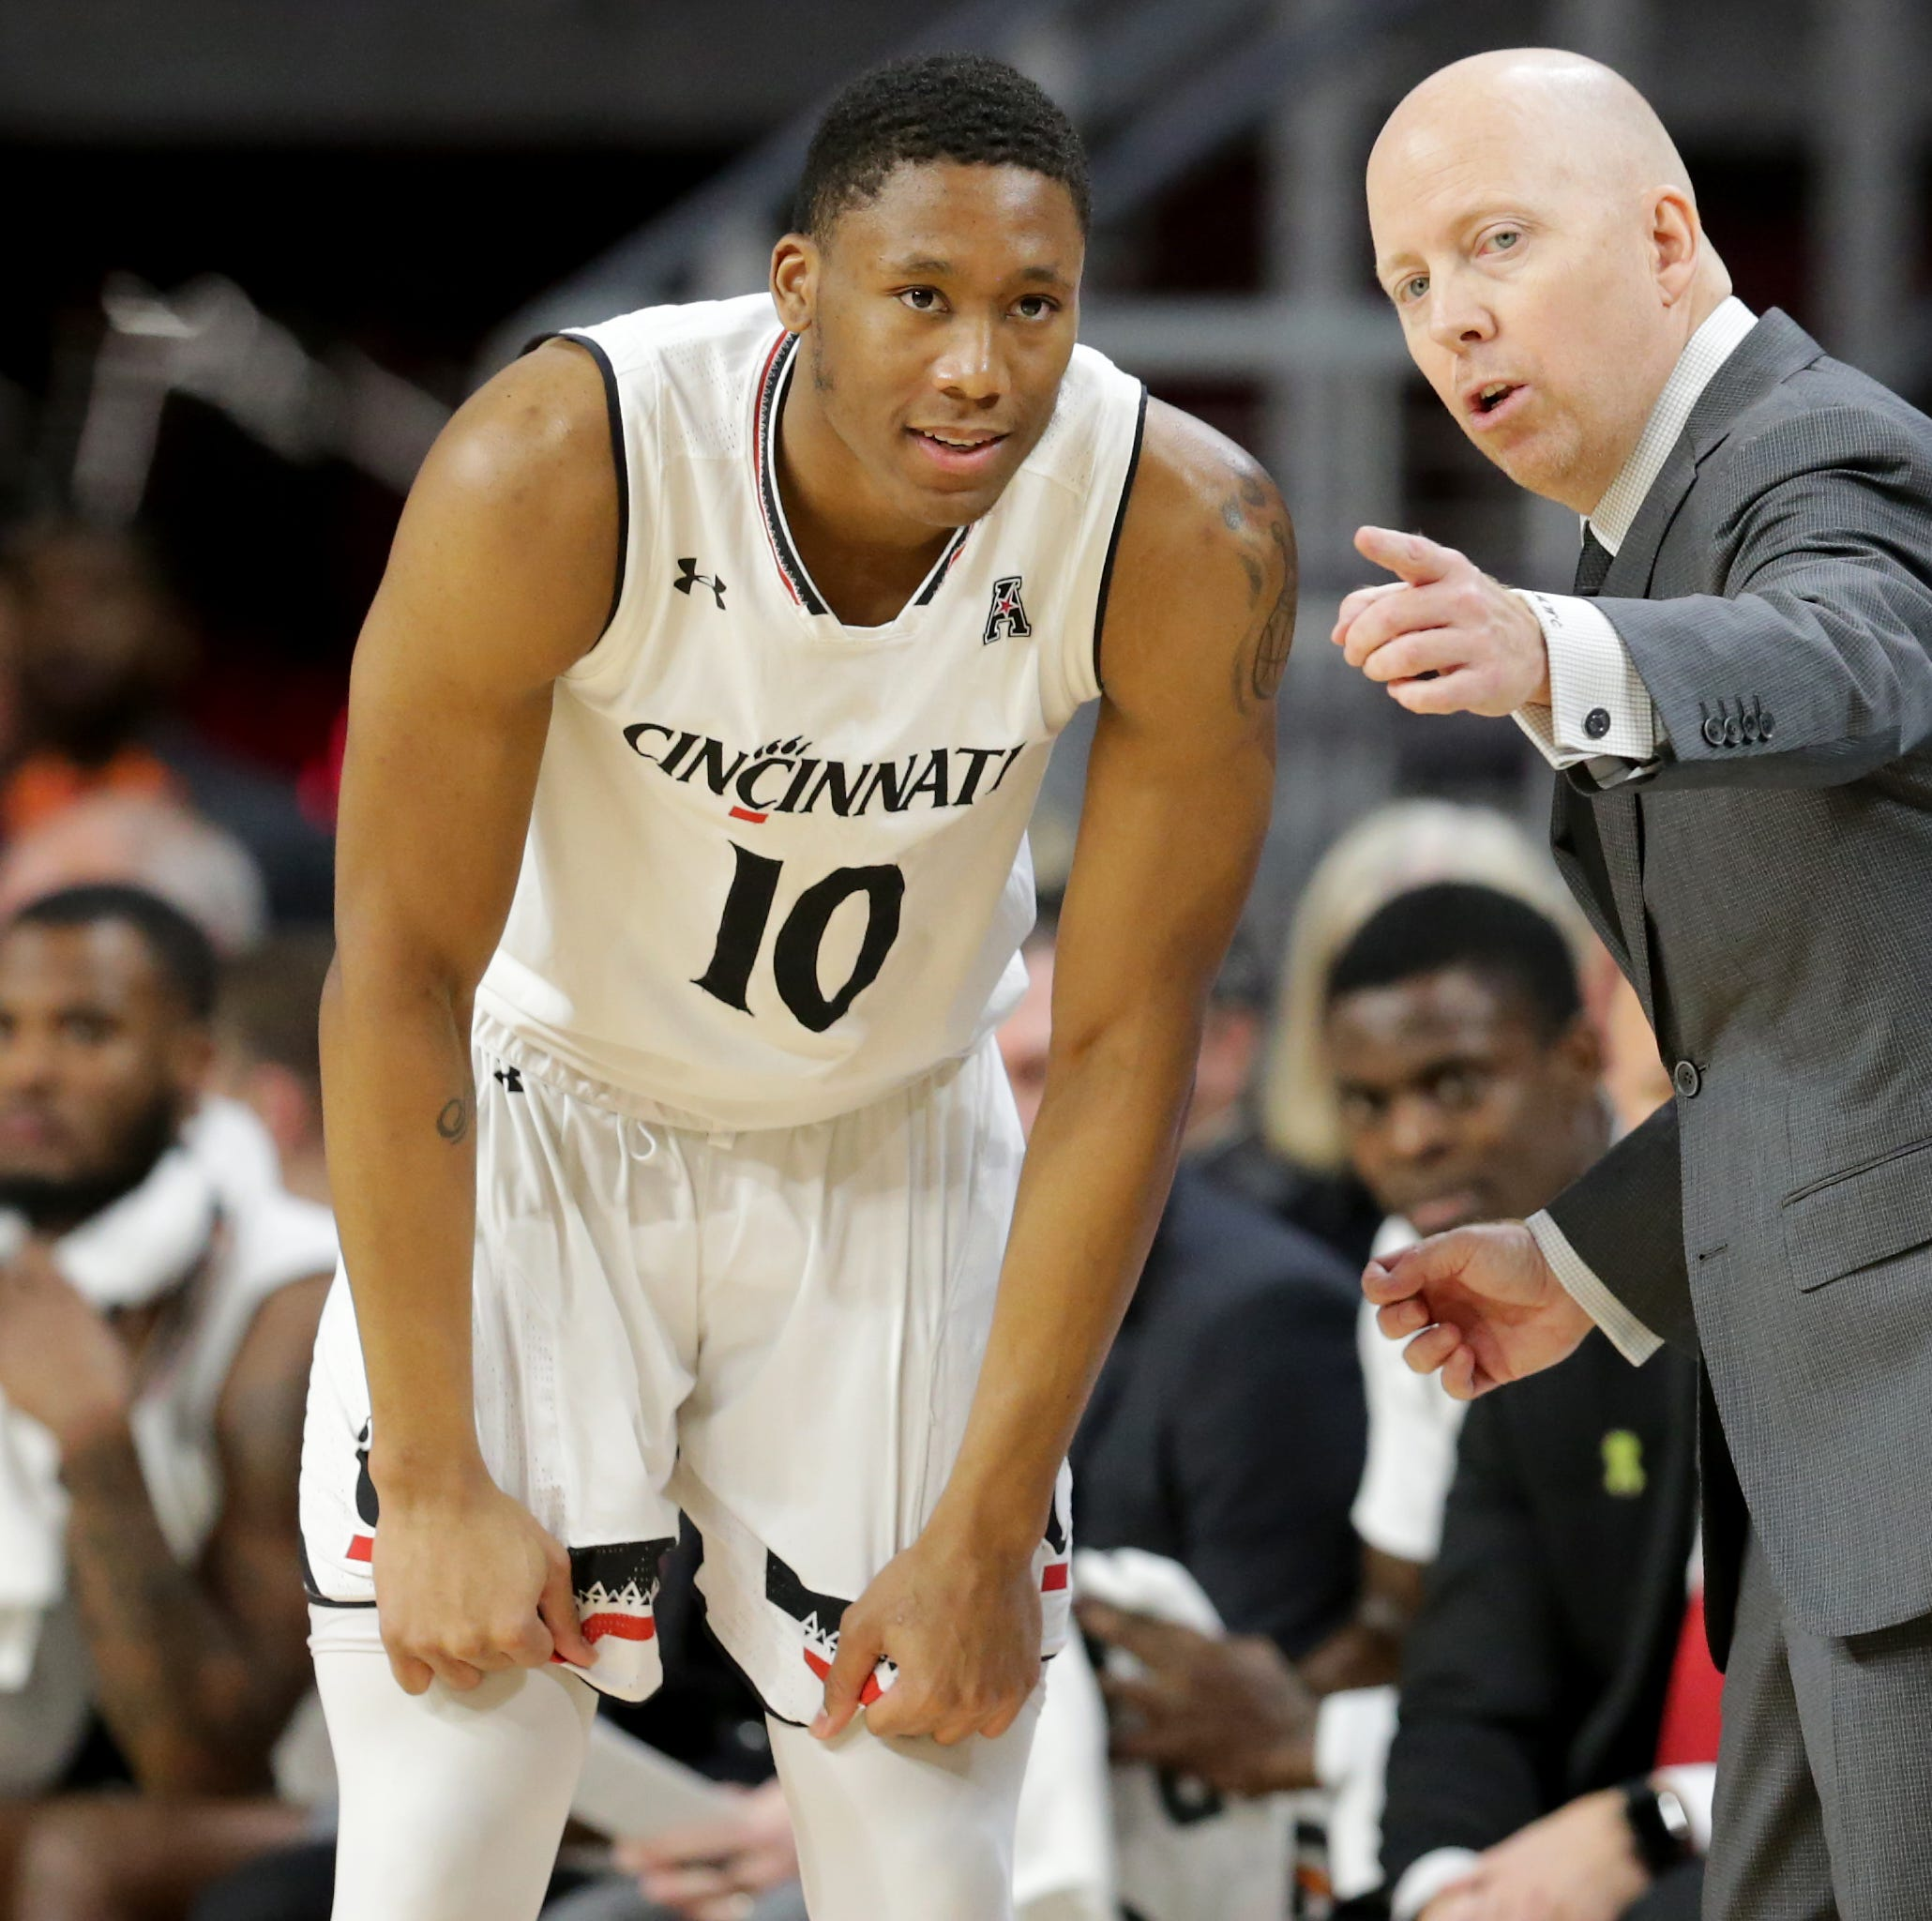 UC Bearcats transfer Rashawn Fredericks announces he'll play for UAB